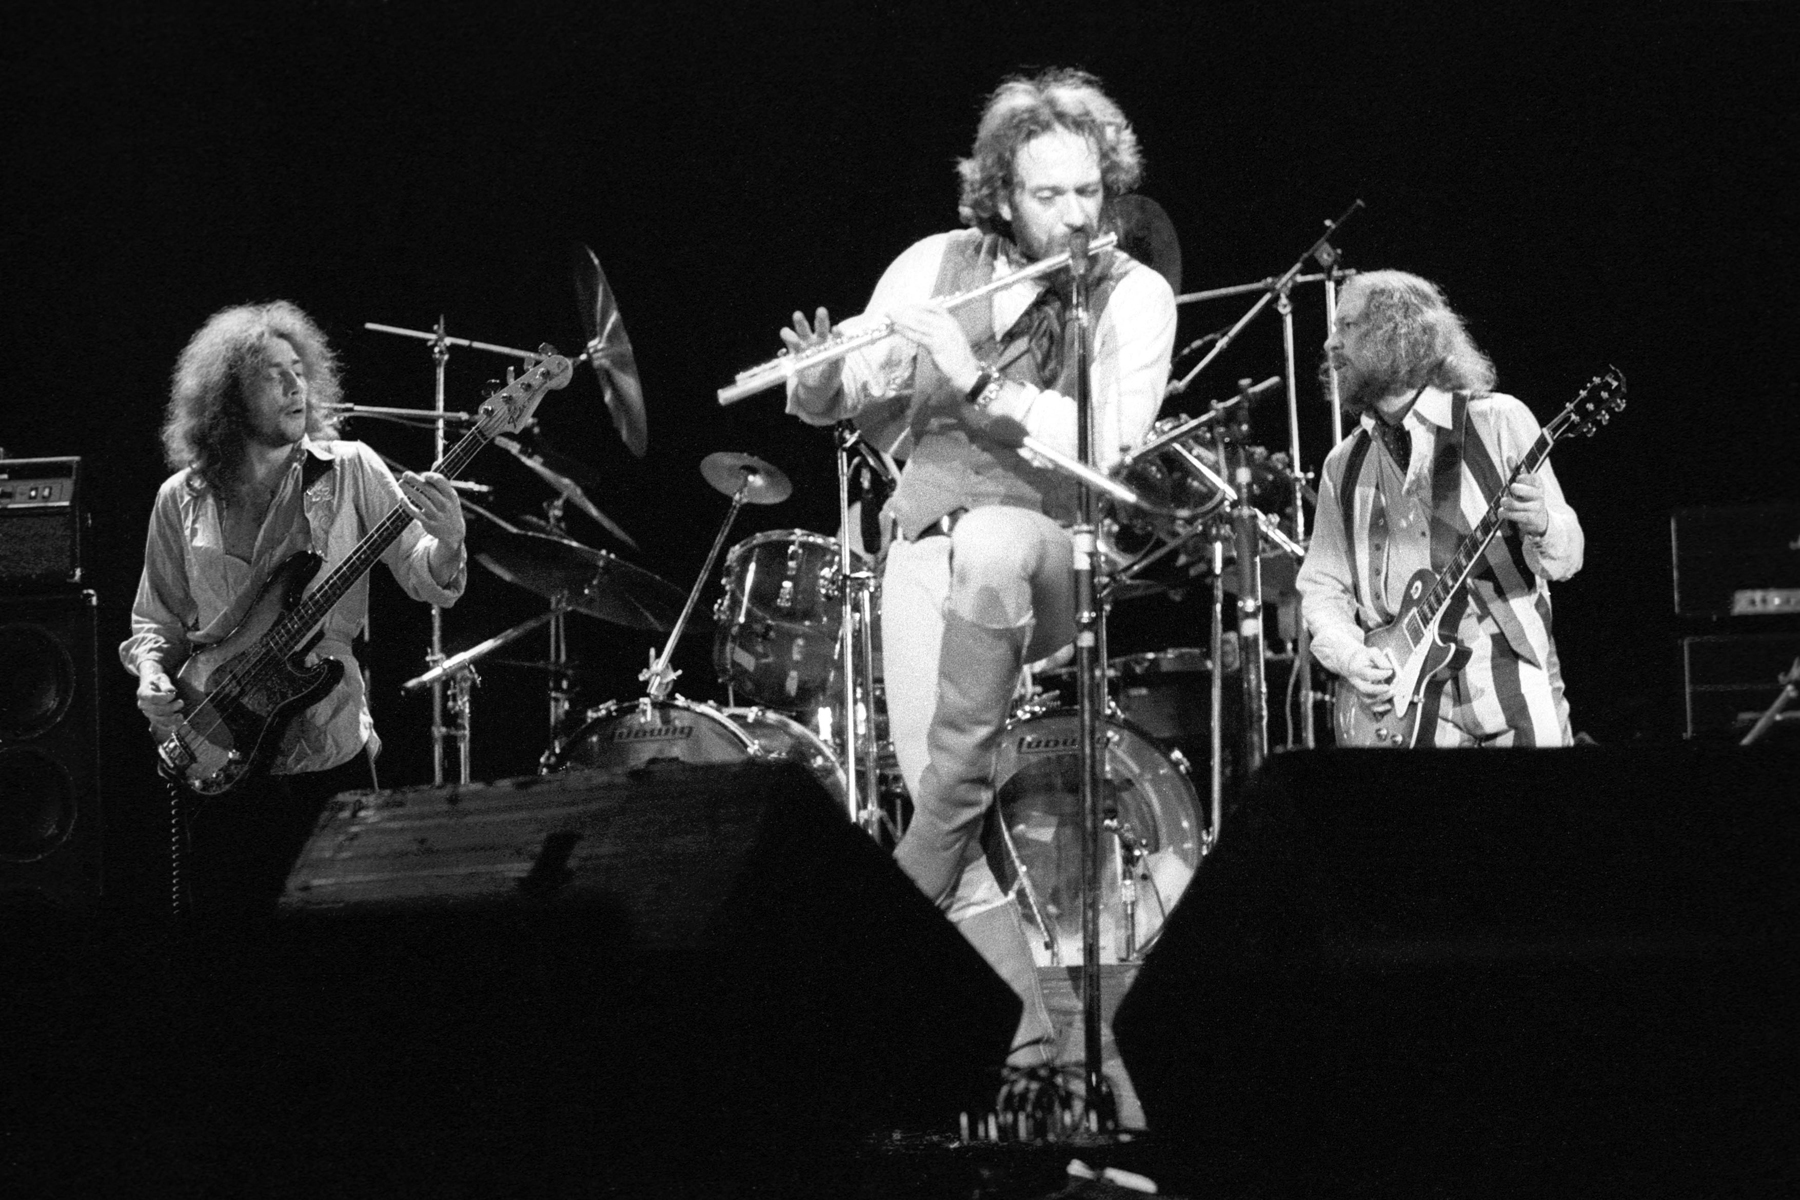 jethro tull extend 50th anniversary tour into 2019 with new u s dates rolling stone. Black Bedroom Furniture Sets. Home Design Ideas